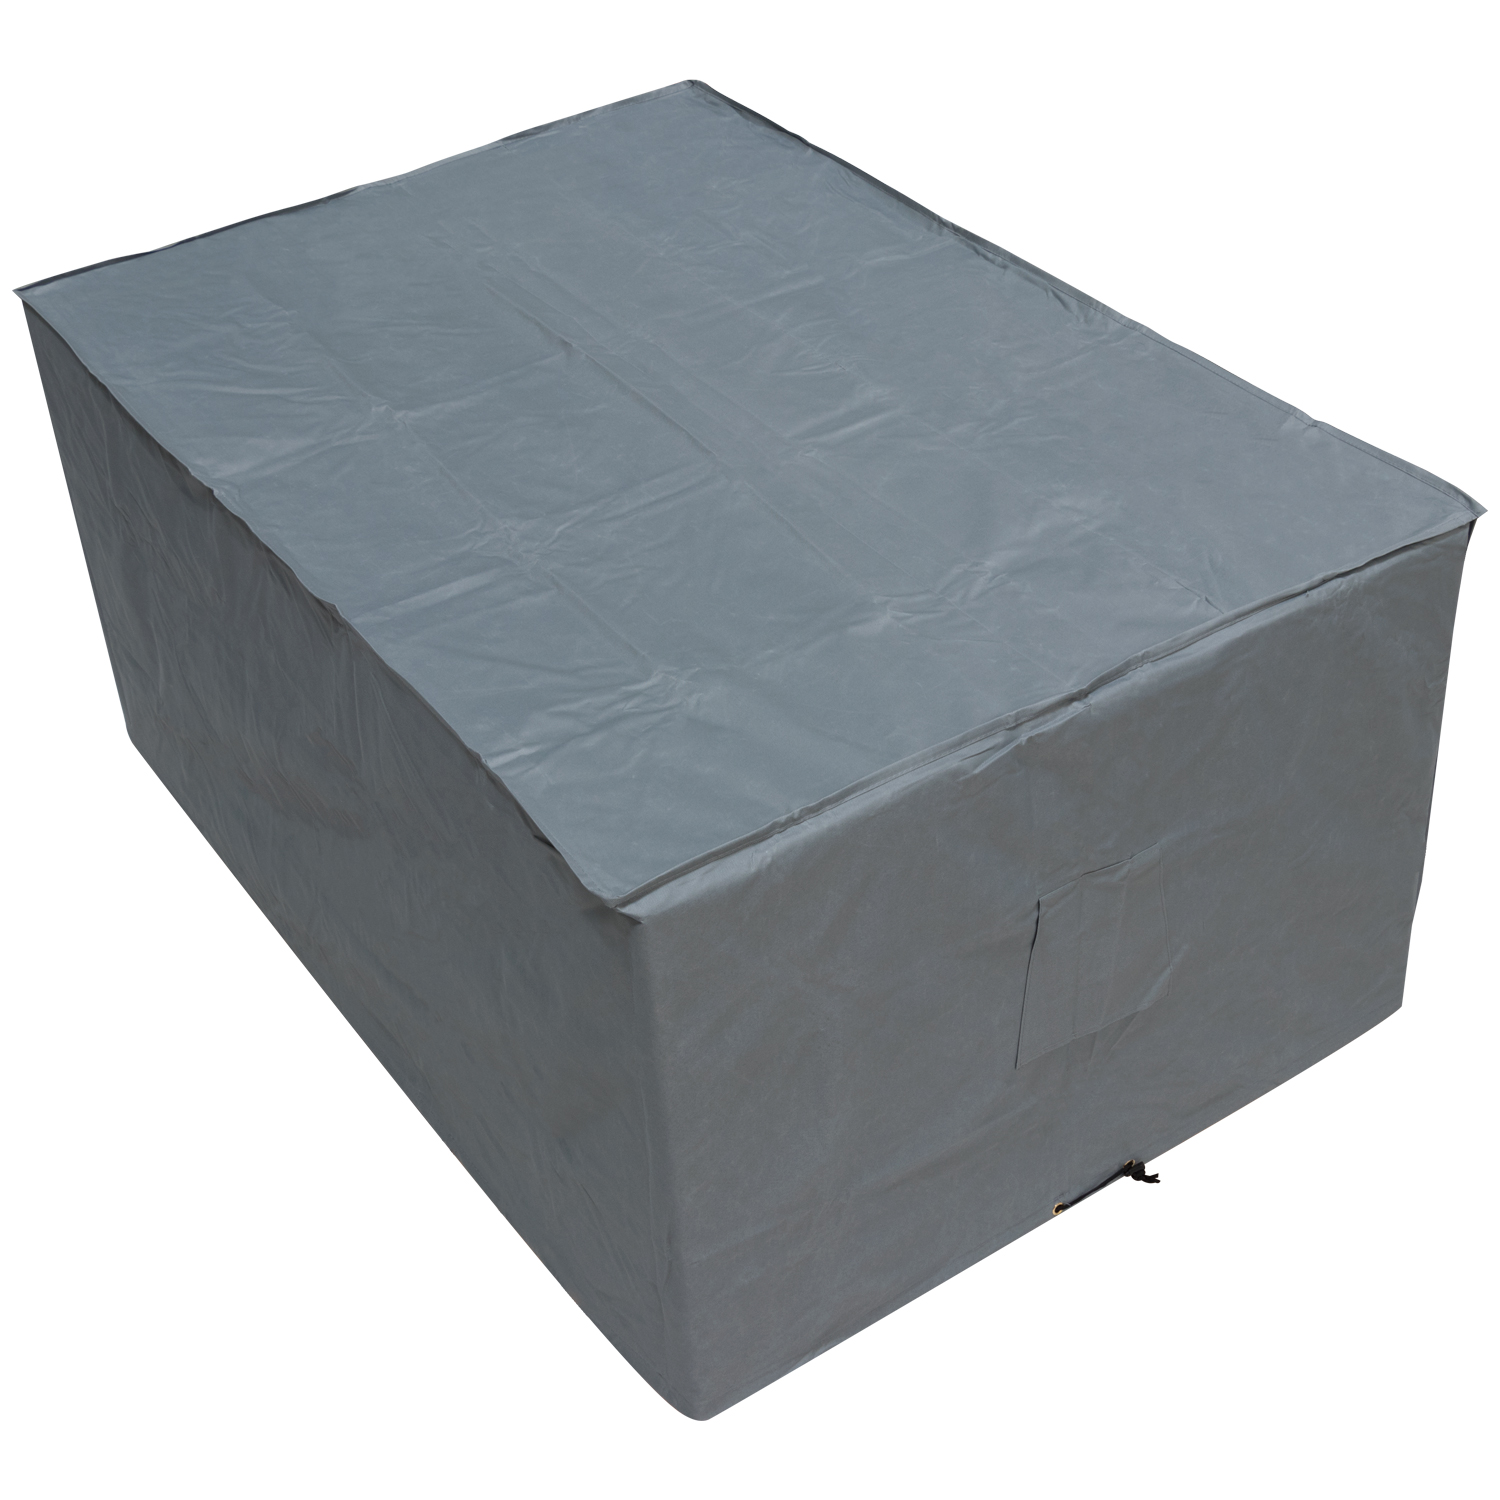 Oxbridge small table cover grey covers outdoor value for Oxbridge outdoor furniture covers